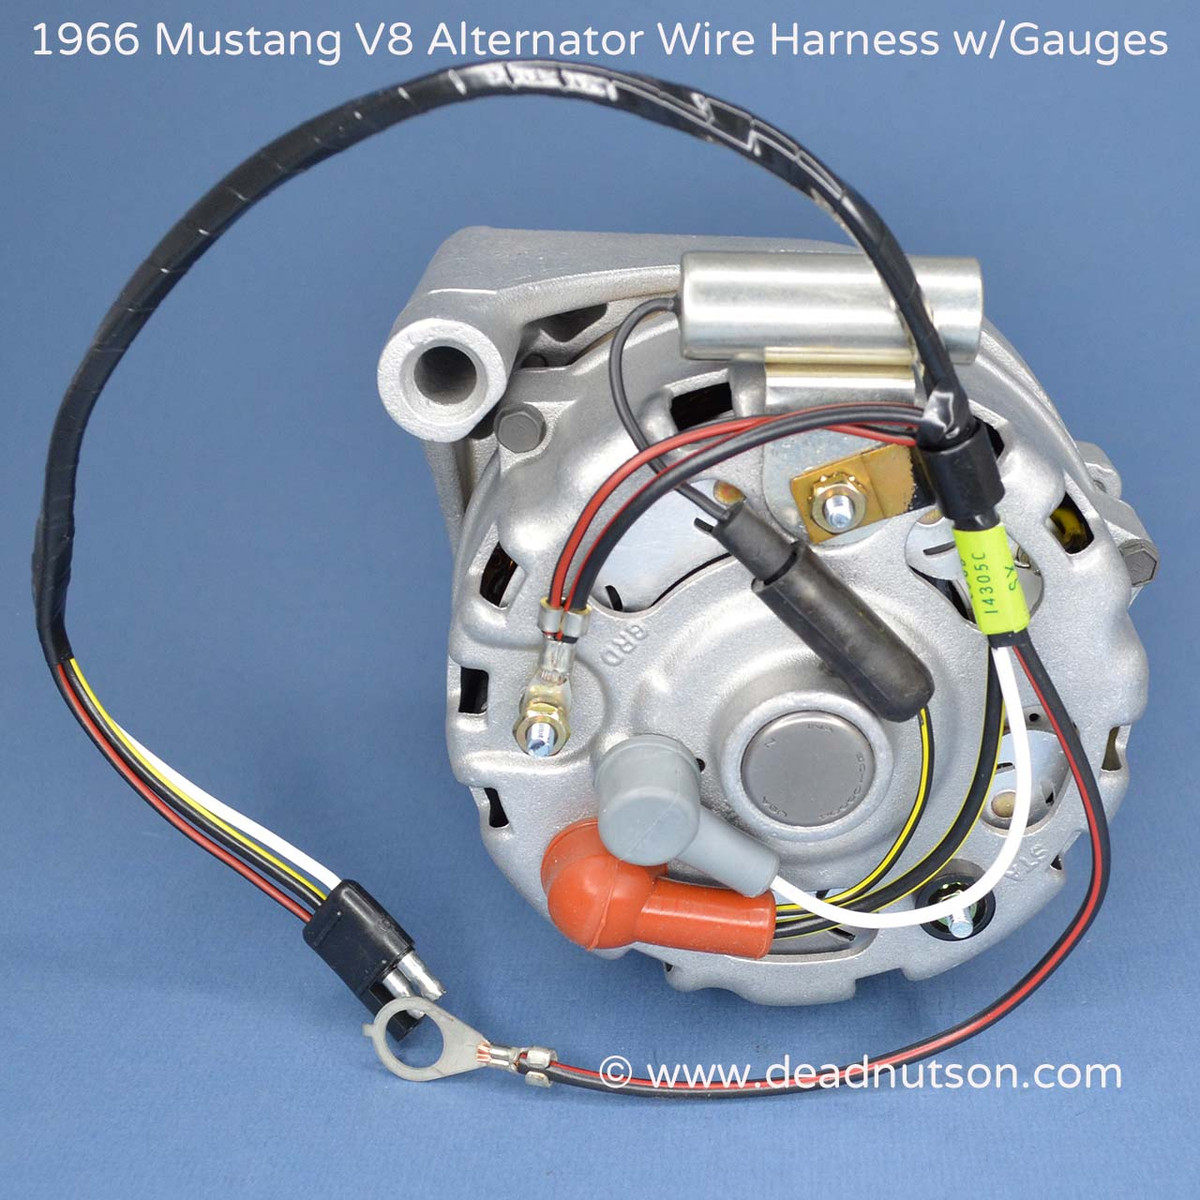 hight resolution of 1964 1965 mustang alternator wire harness tag 289 w instrument 1968 mustang wiring harness diagram 1964